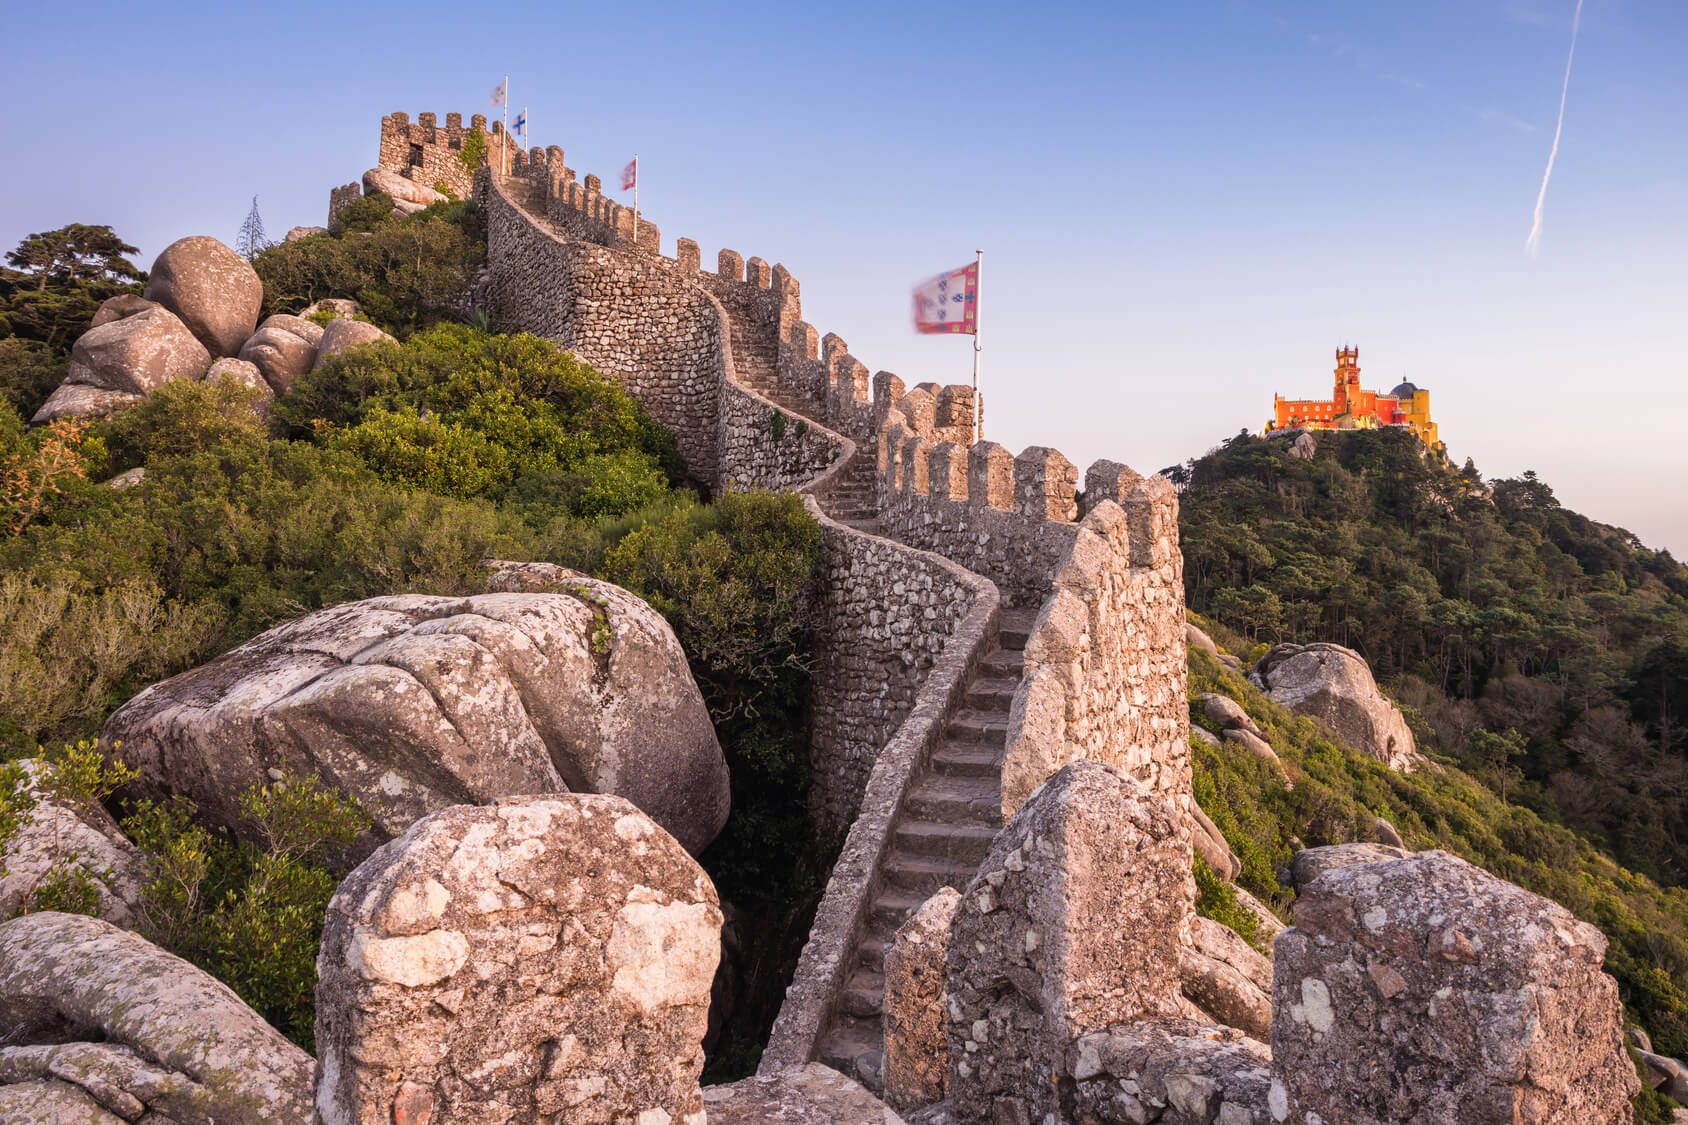 Image of Sintra Castle